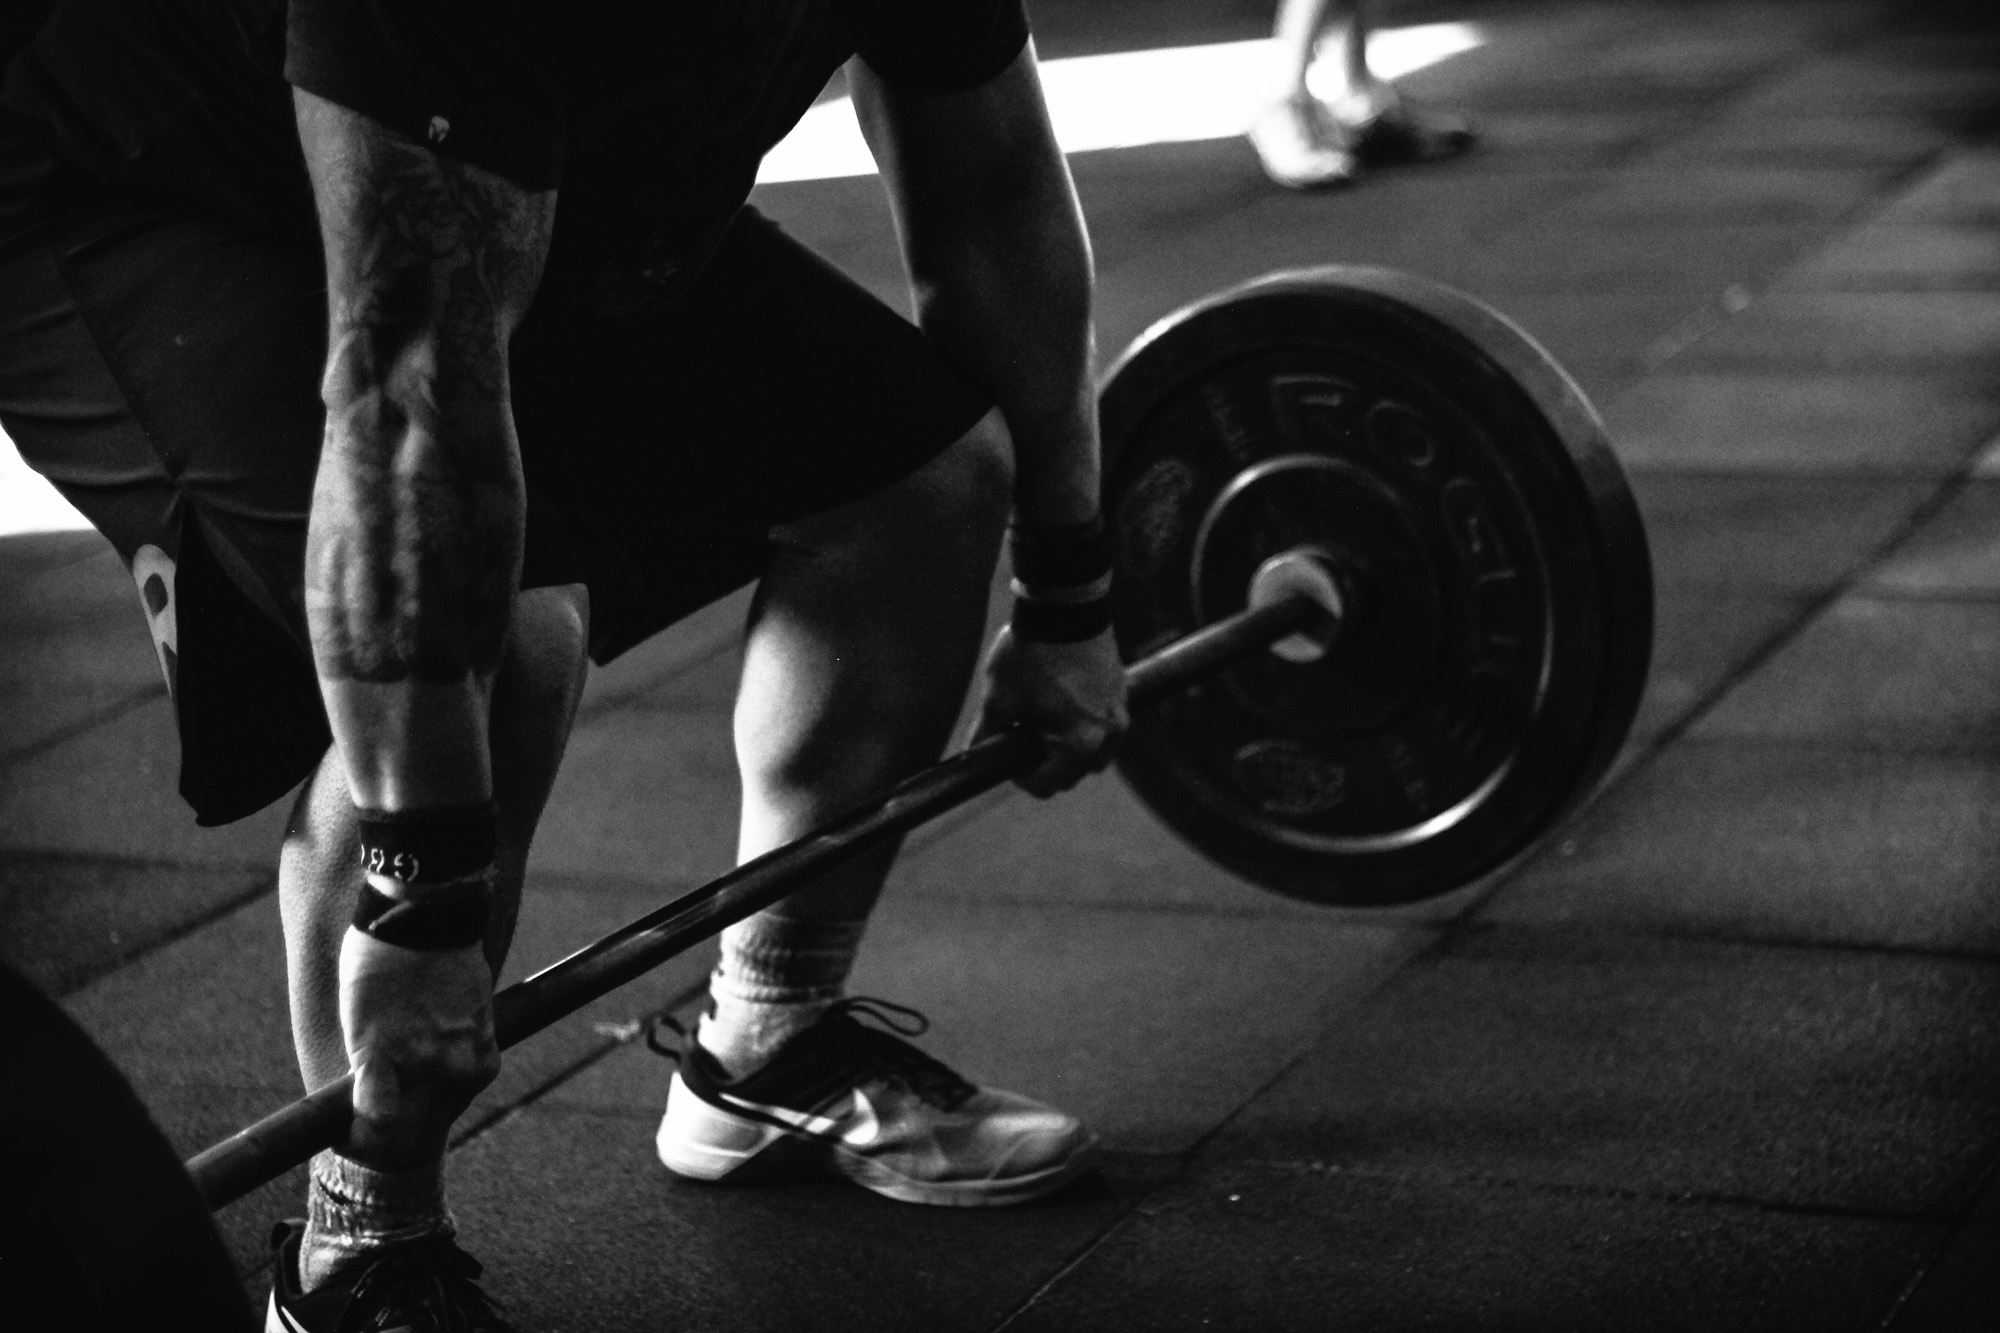 WEIGHT classes - Lift. Squat. Press.